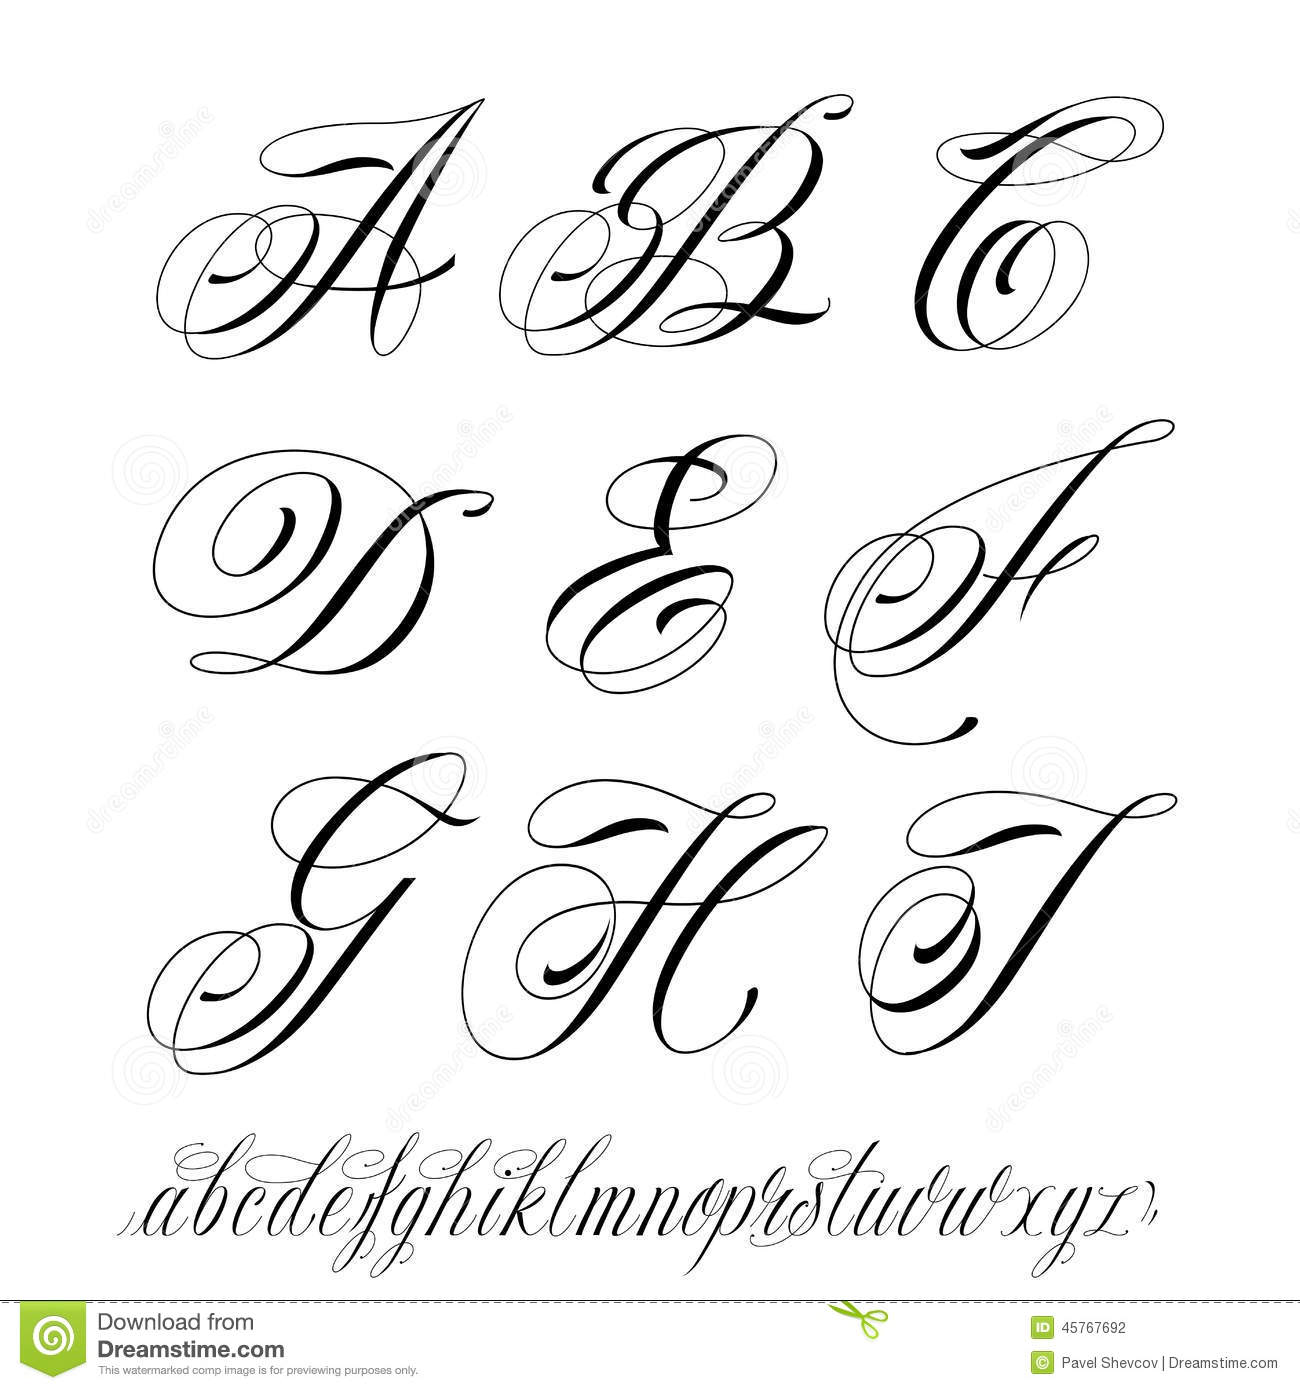 Ilustra%C3%A7%C3%A3o Stock Alfabeto Do Estilo Da Tatuagem Image45767692 on Handwriting Cursive